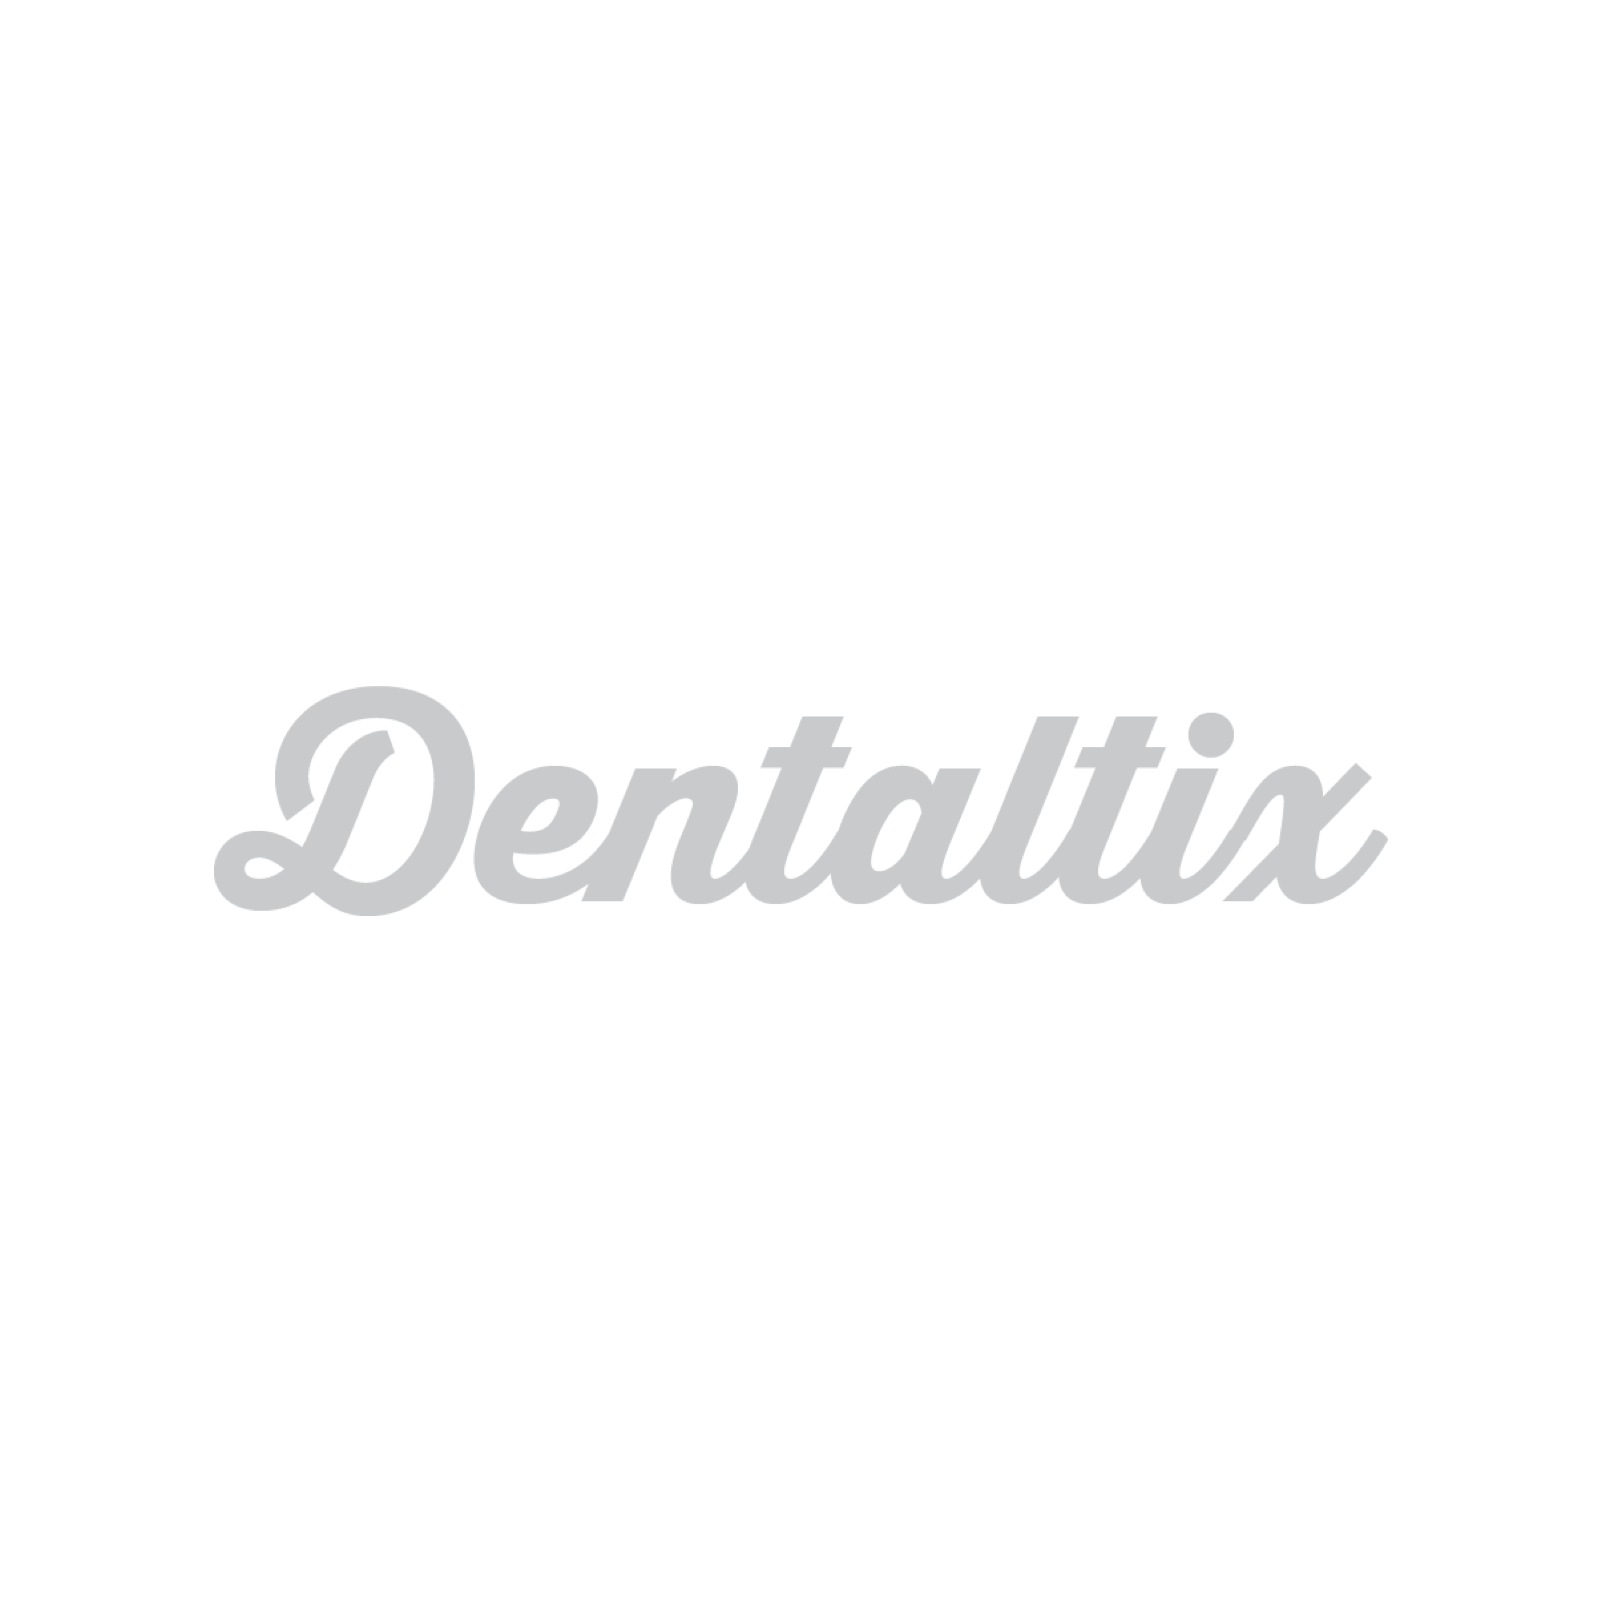 Copy of Dentaltix Logo